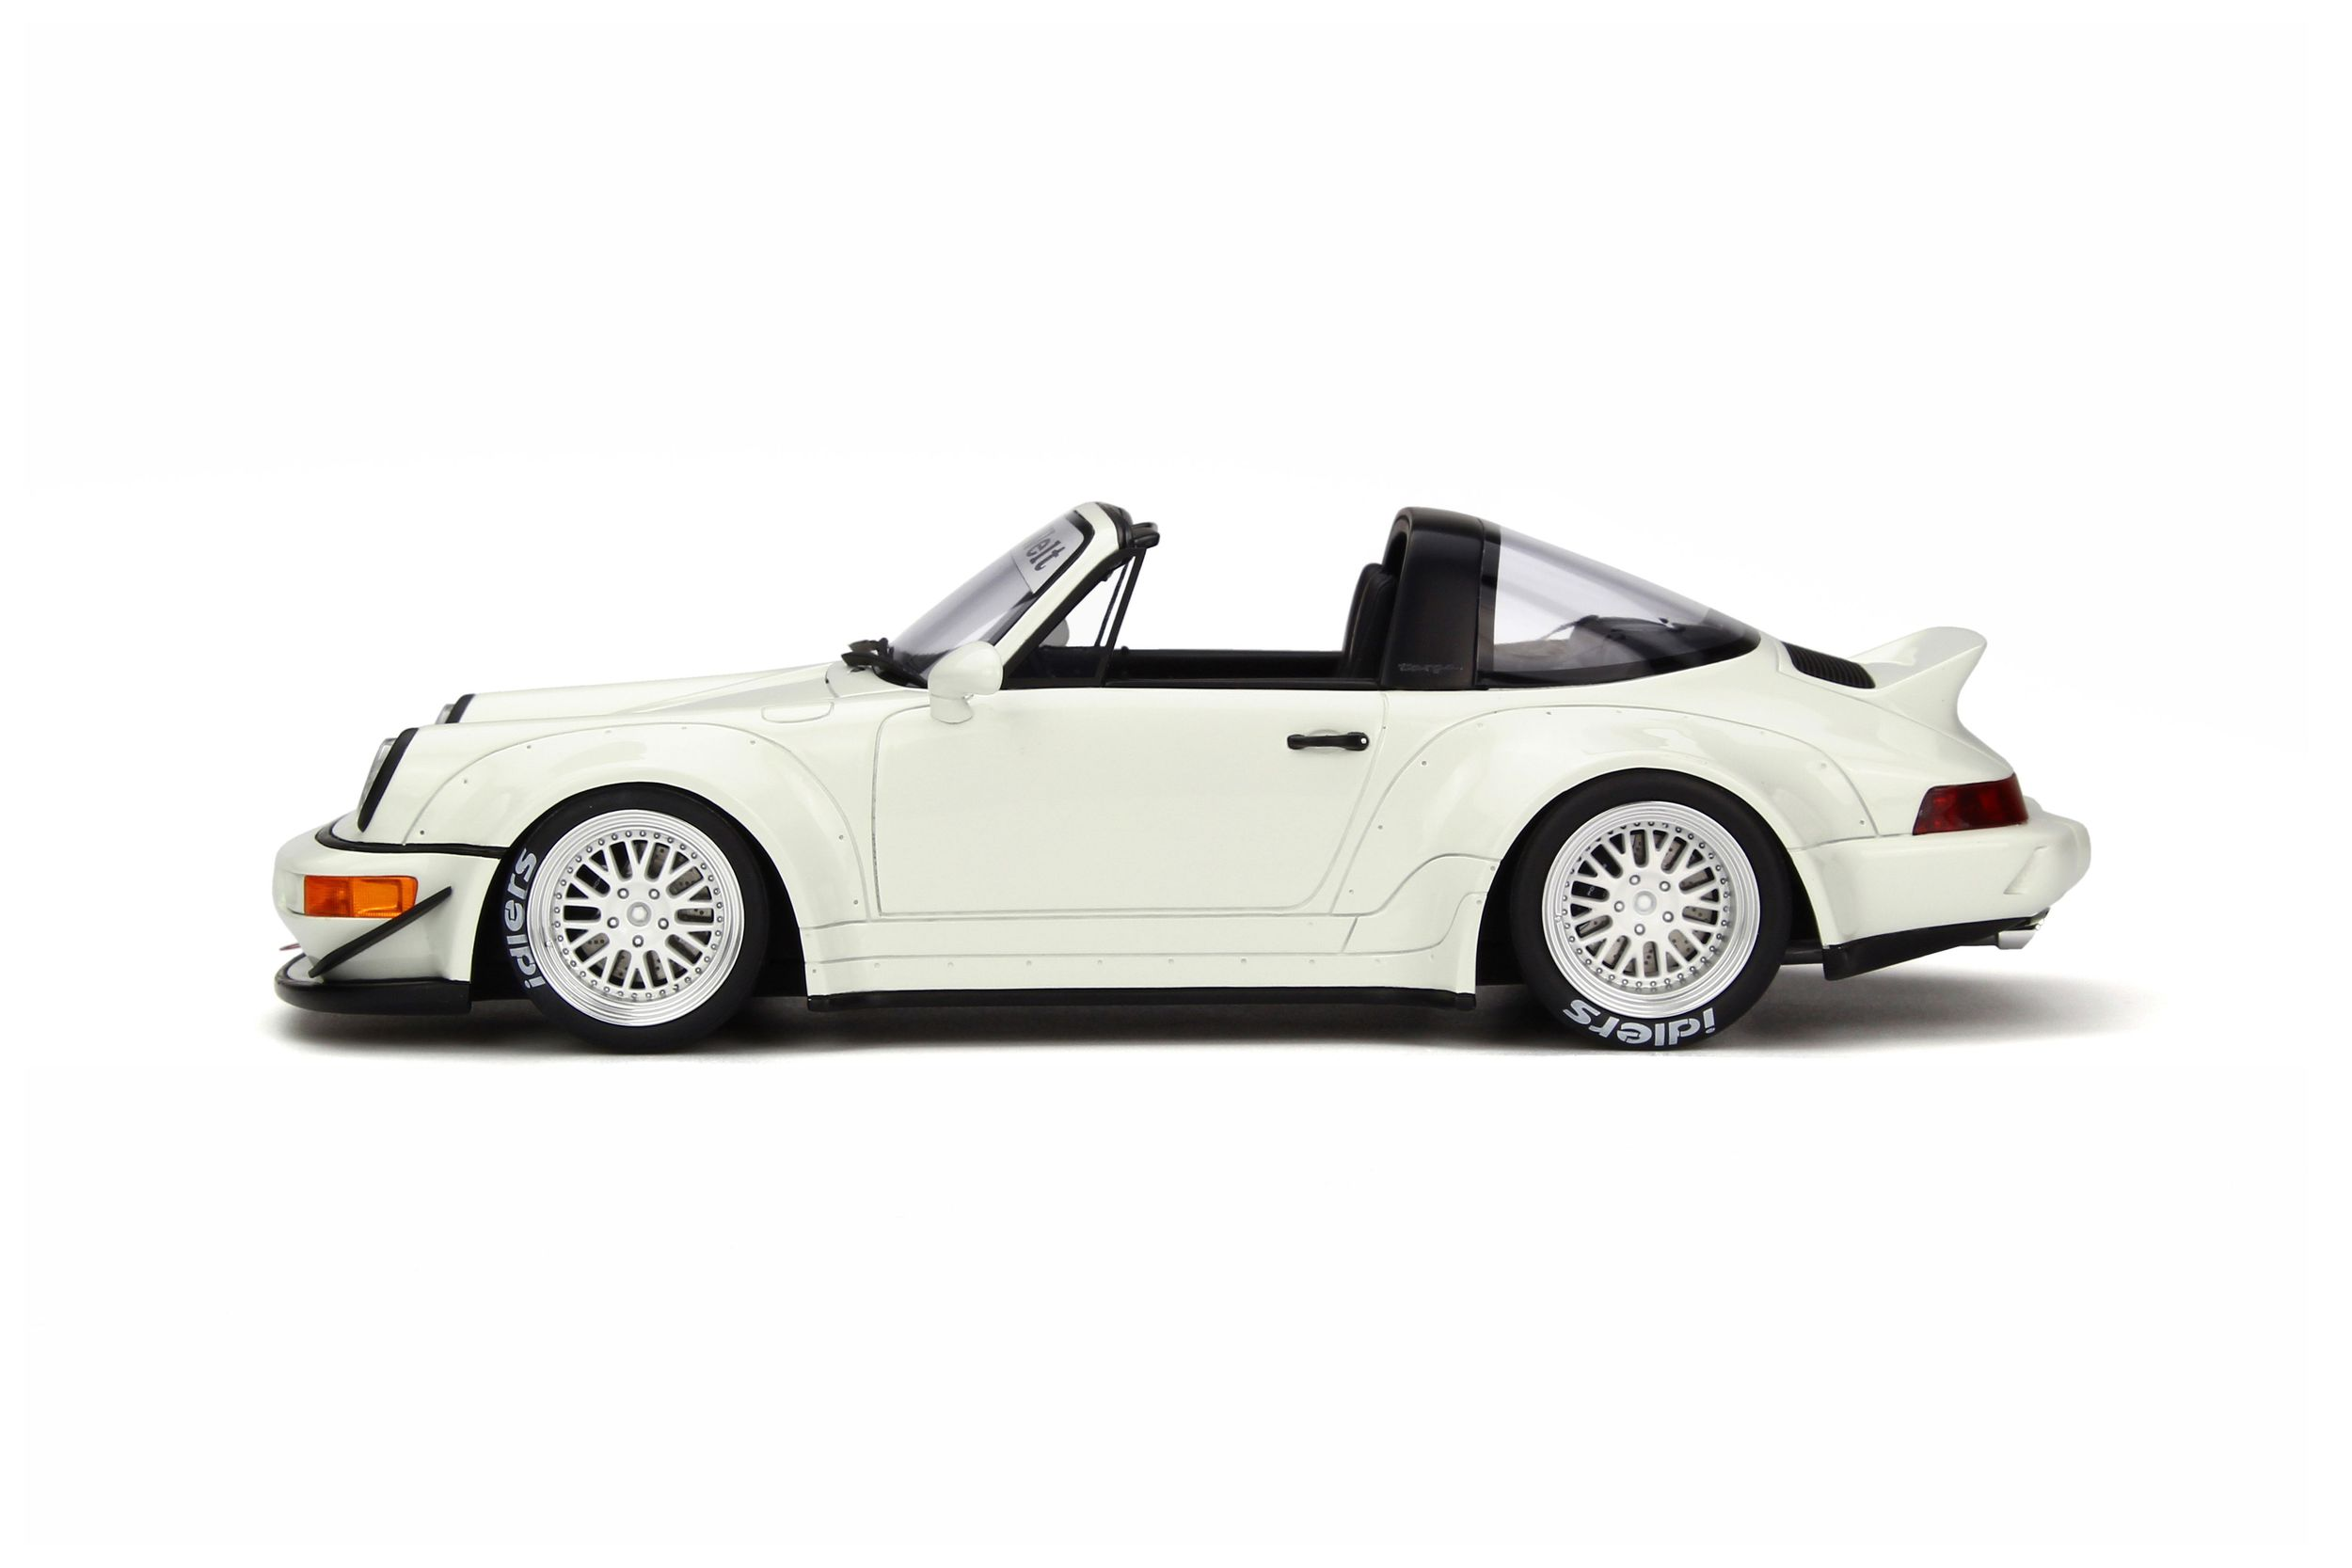 Targa Rwb Walpaper: RWB 964 Targa - Model Car Collection